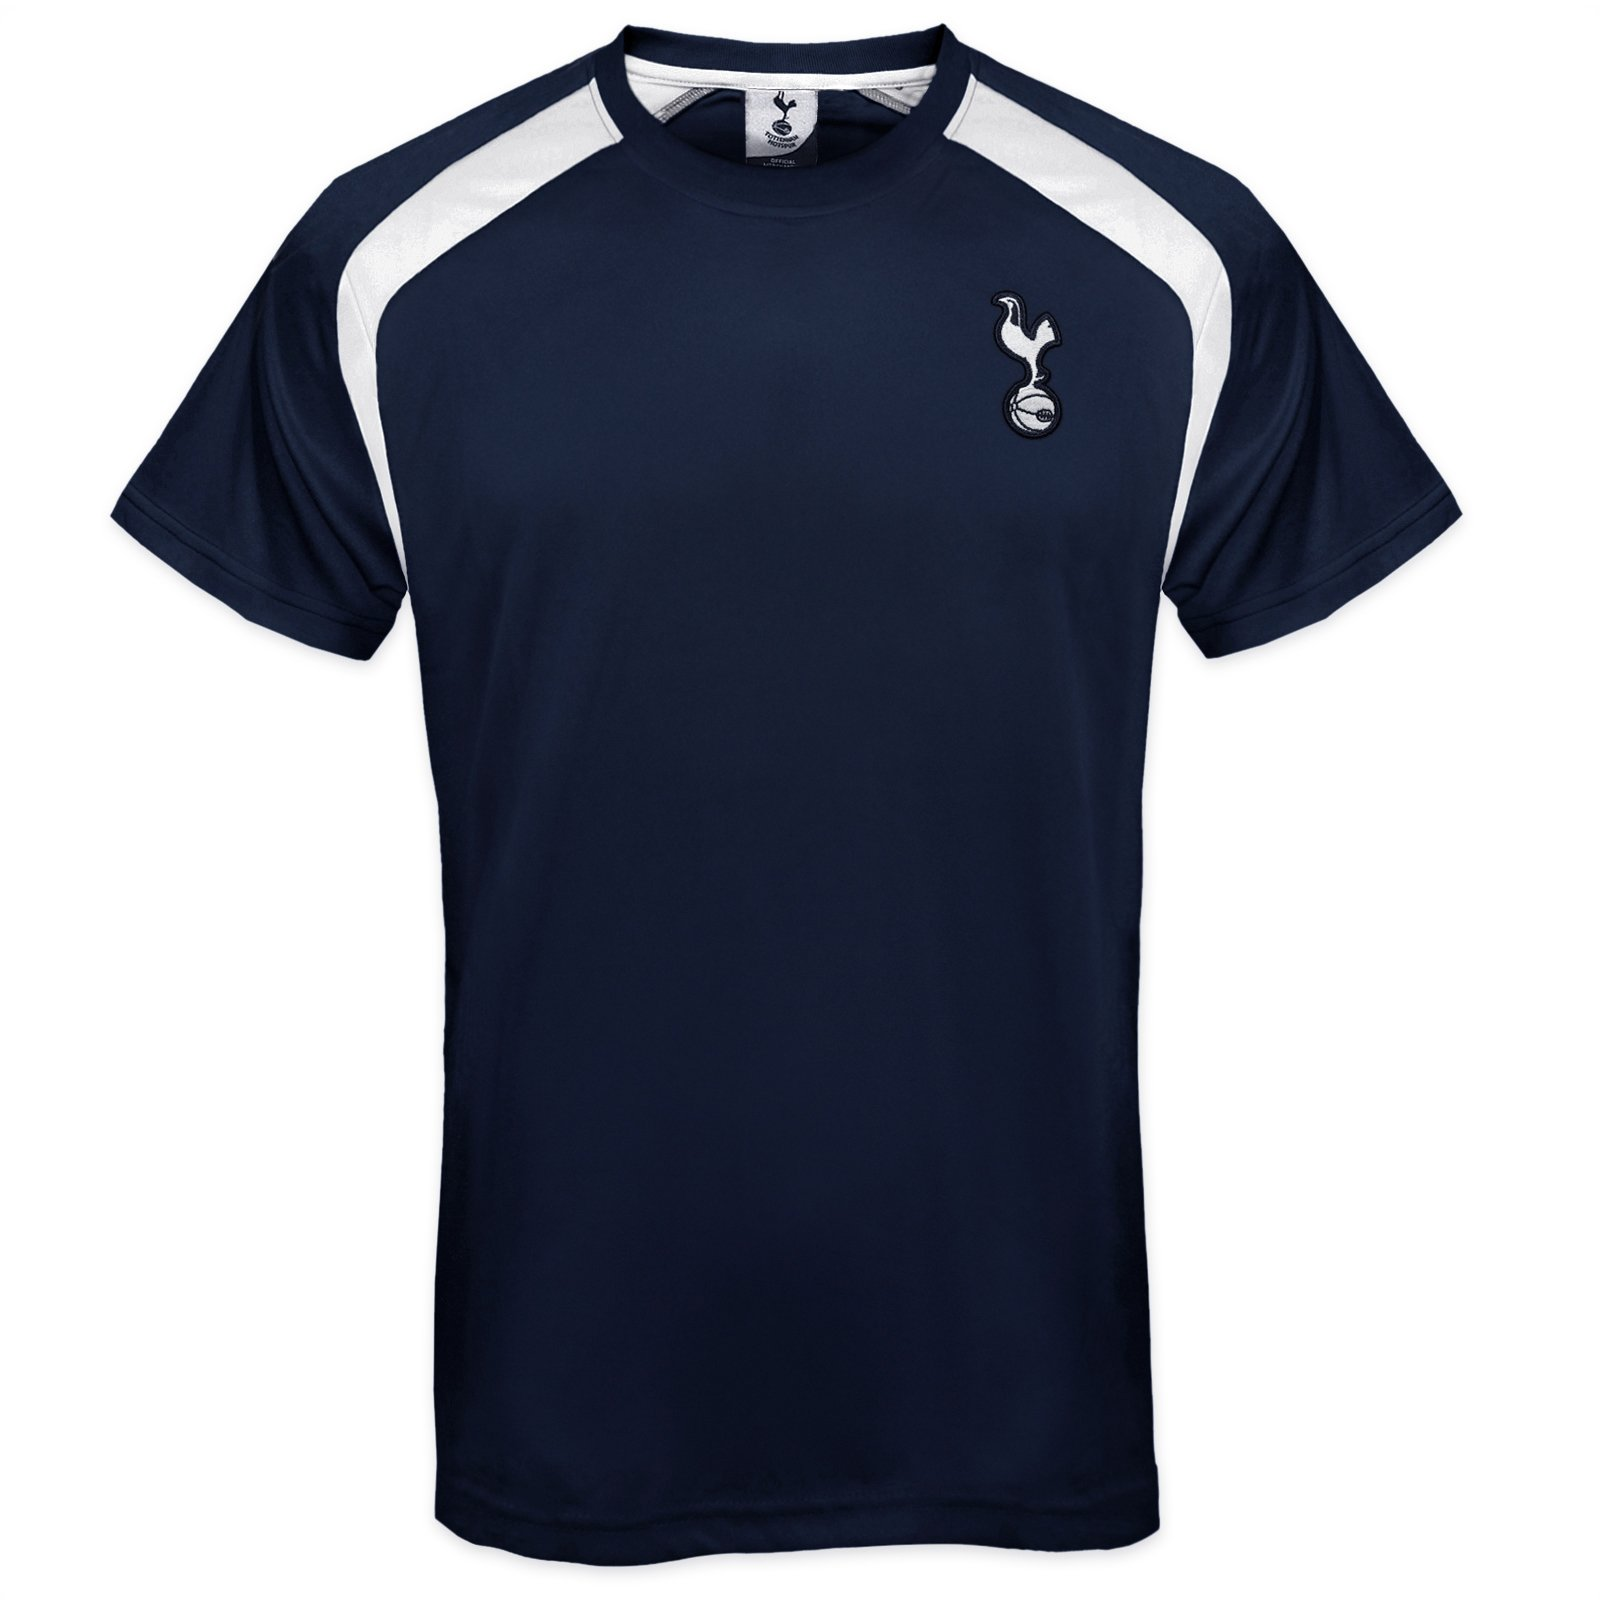 661f102ee31 Tottenham Hotspur FC Official Football Gift Mens Kit T-Shirt product image